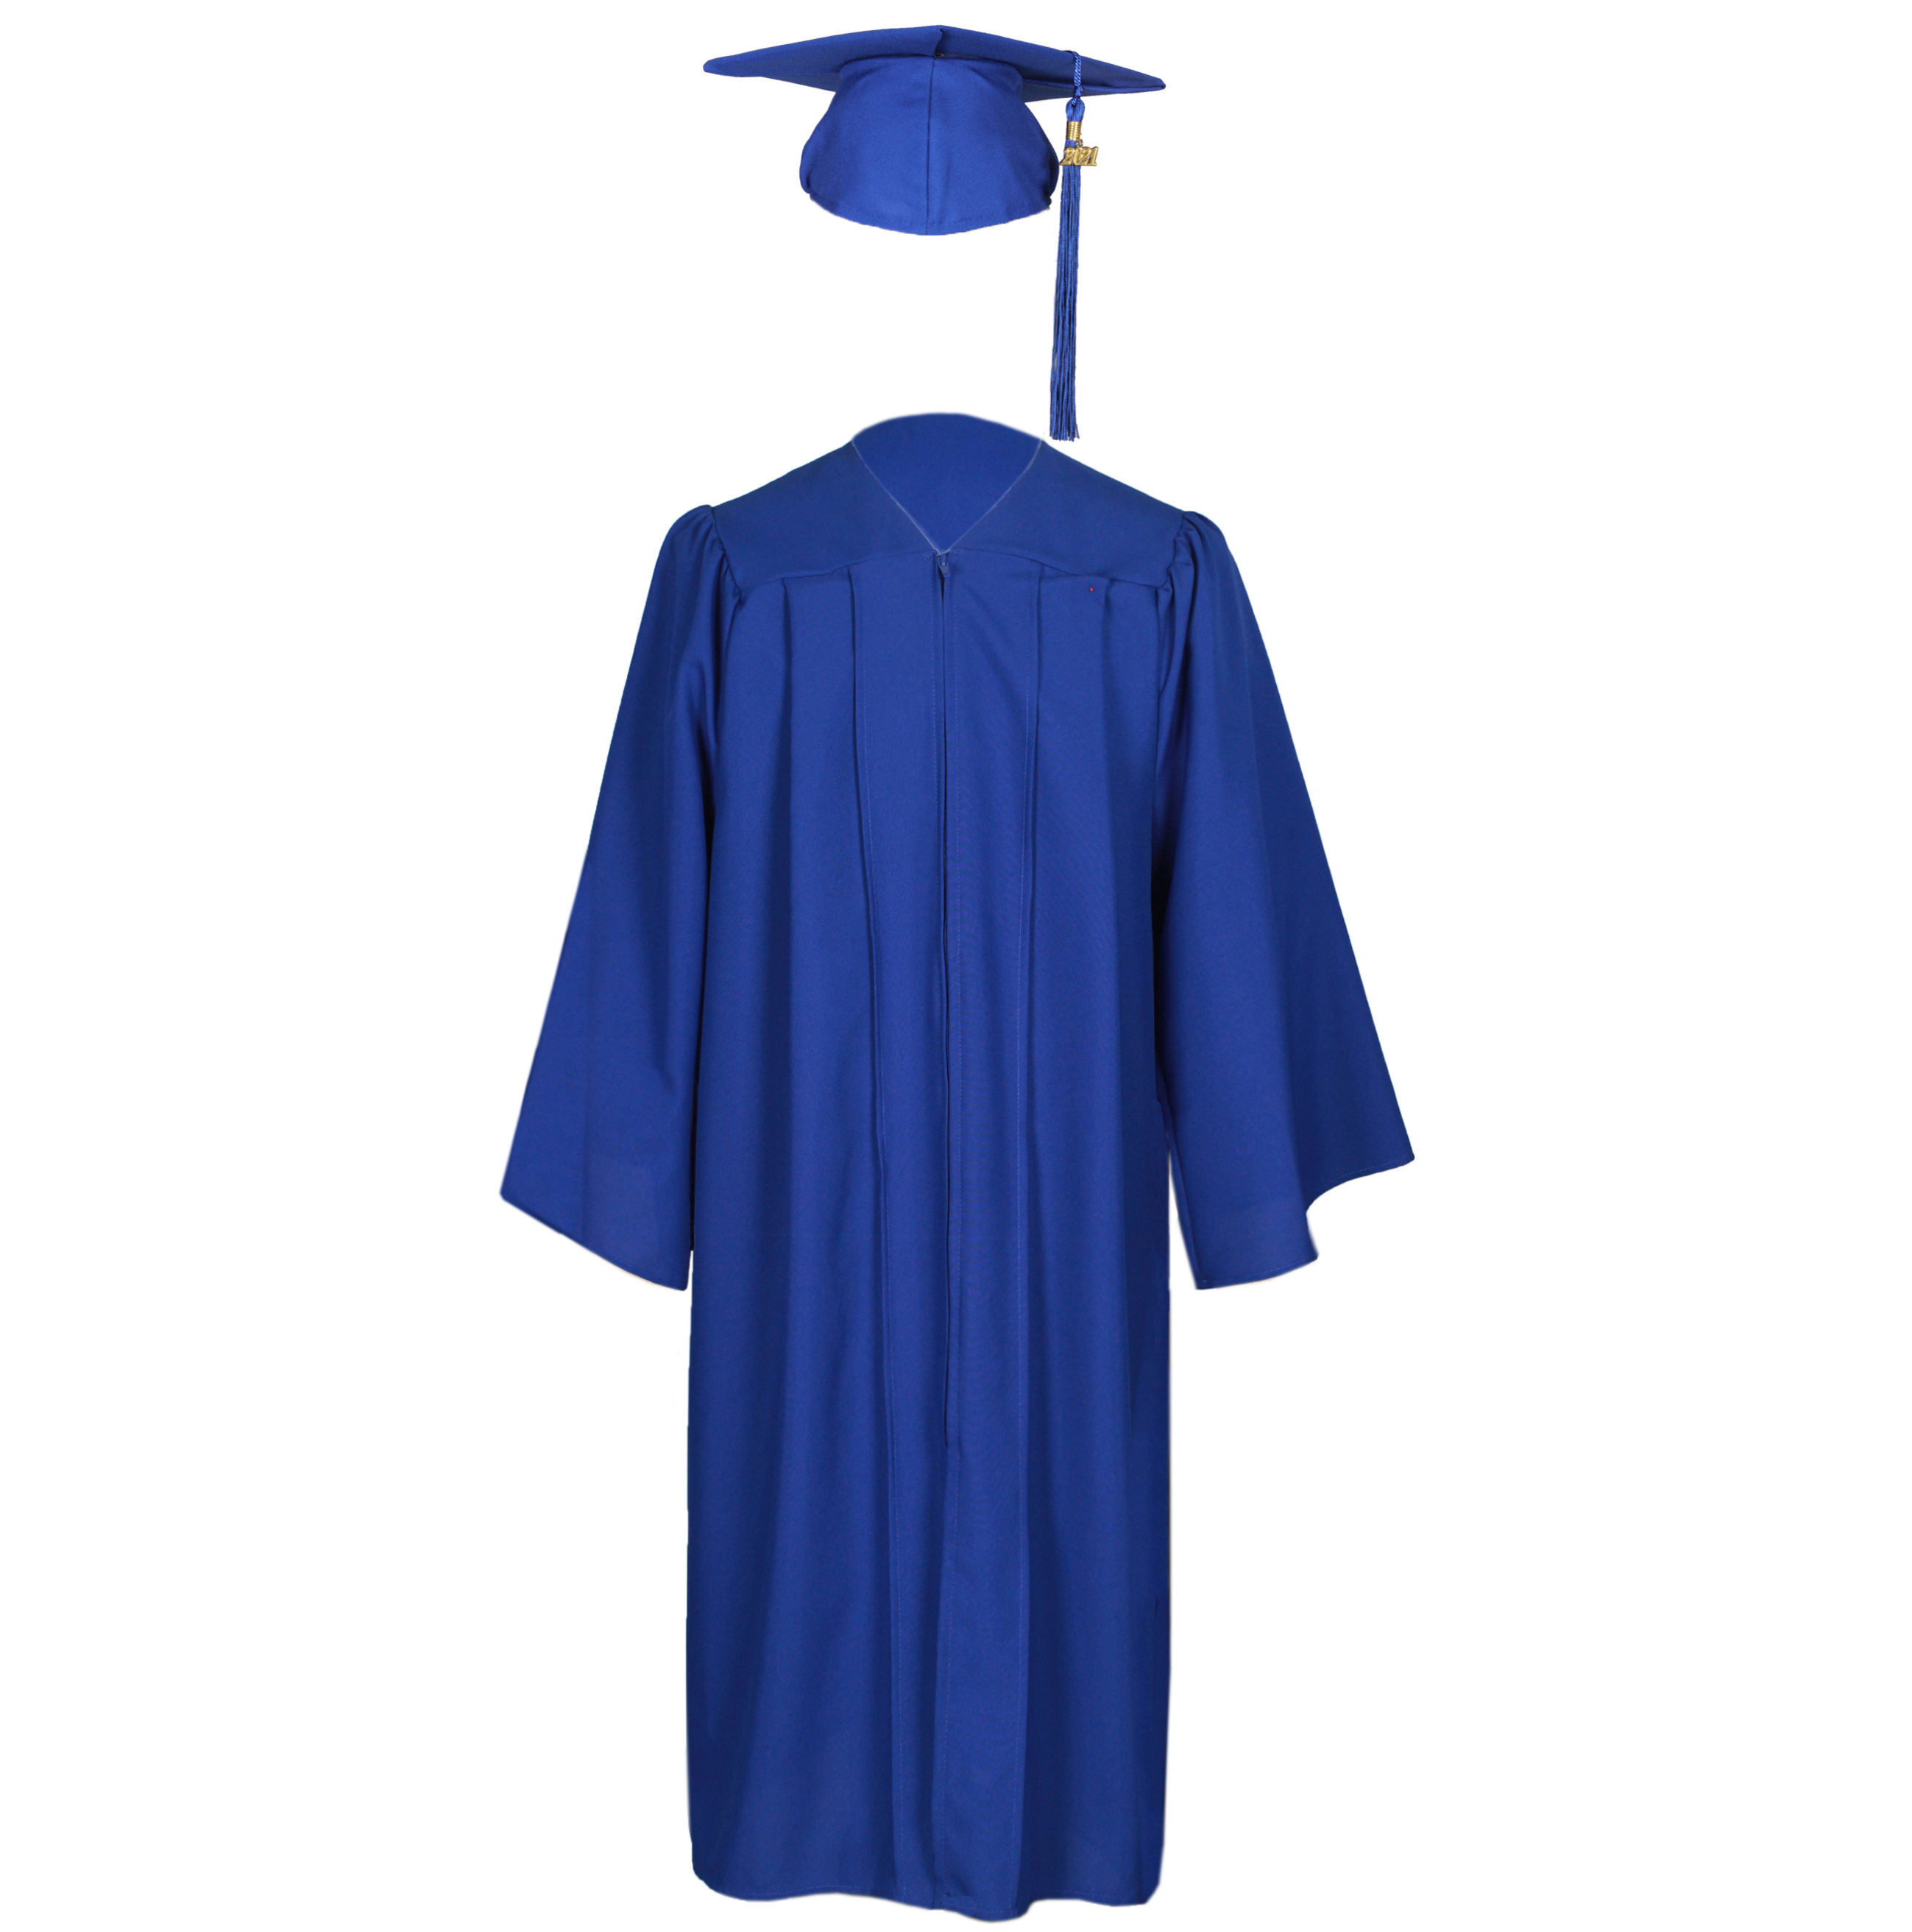 graduation gown graduation gowns Royal Blue graduation hats and gowns with tassel and year charm